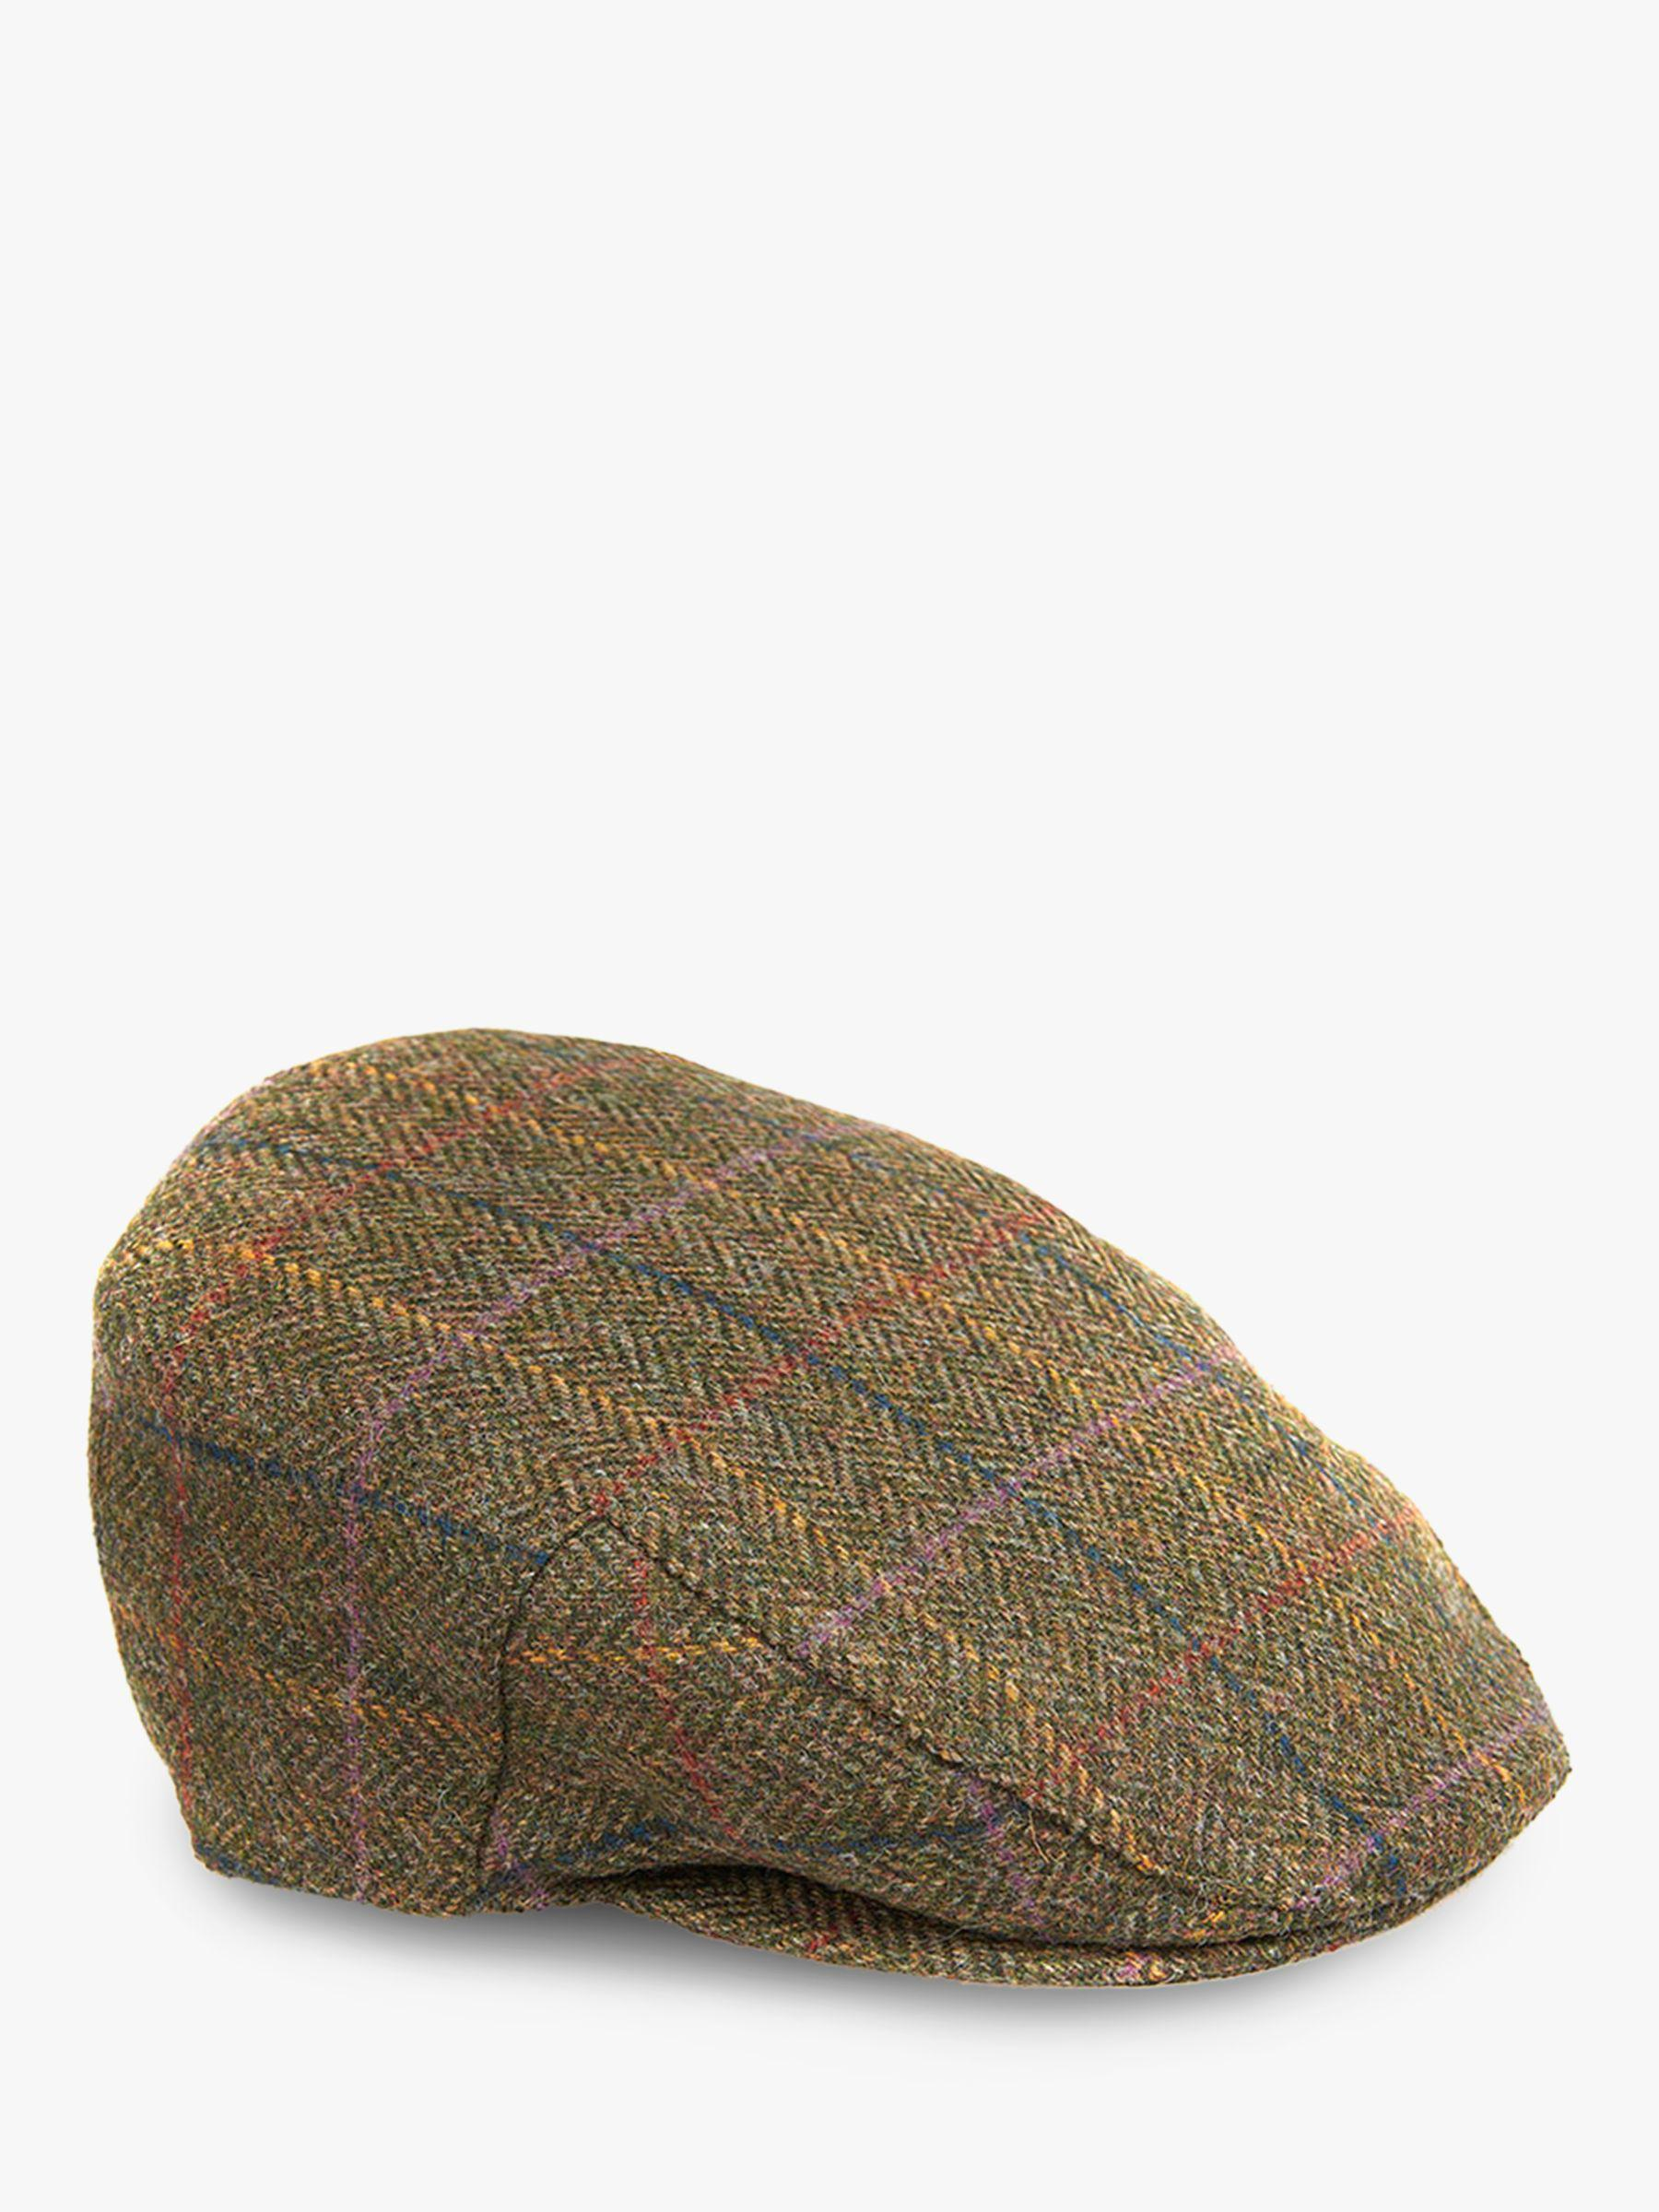 6c17b5dabae Barbour Moons Wool Tweed Cap in Green for Men - Lyst